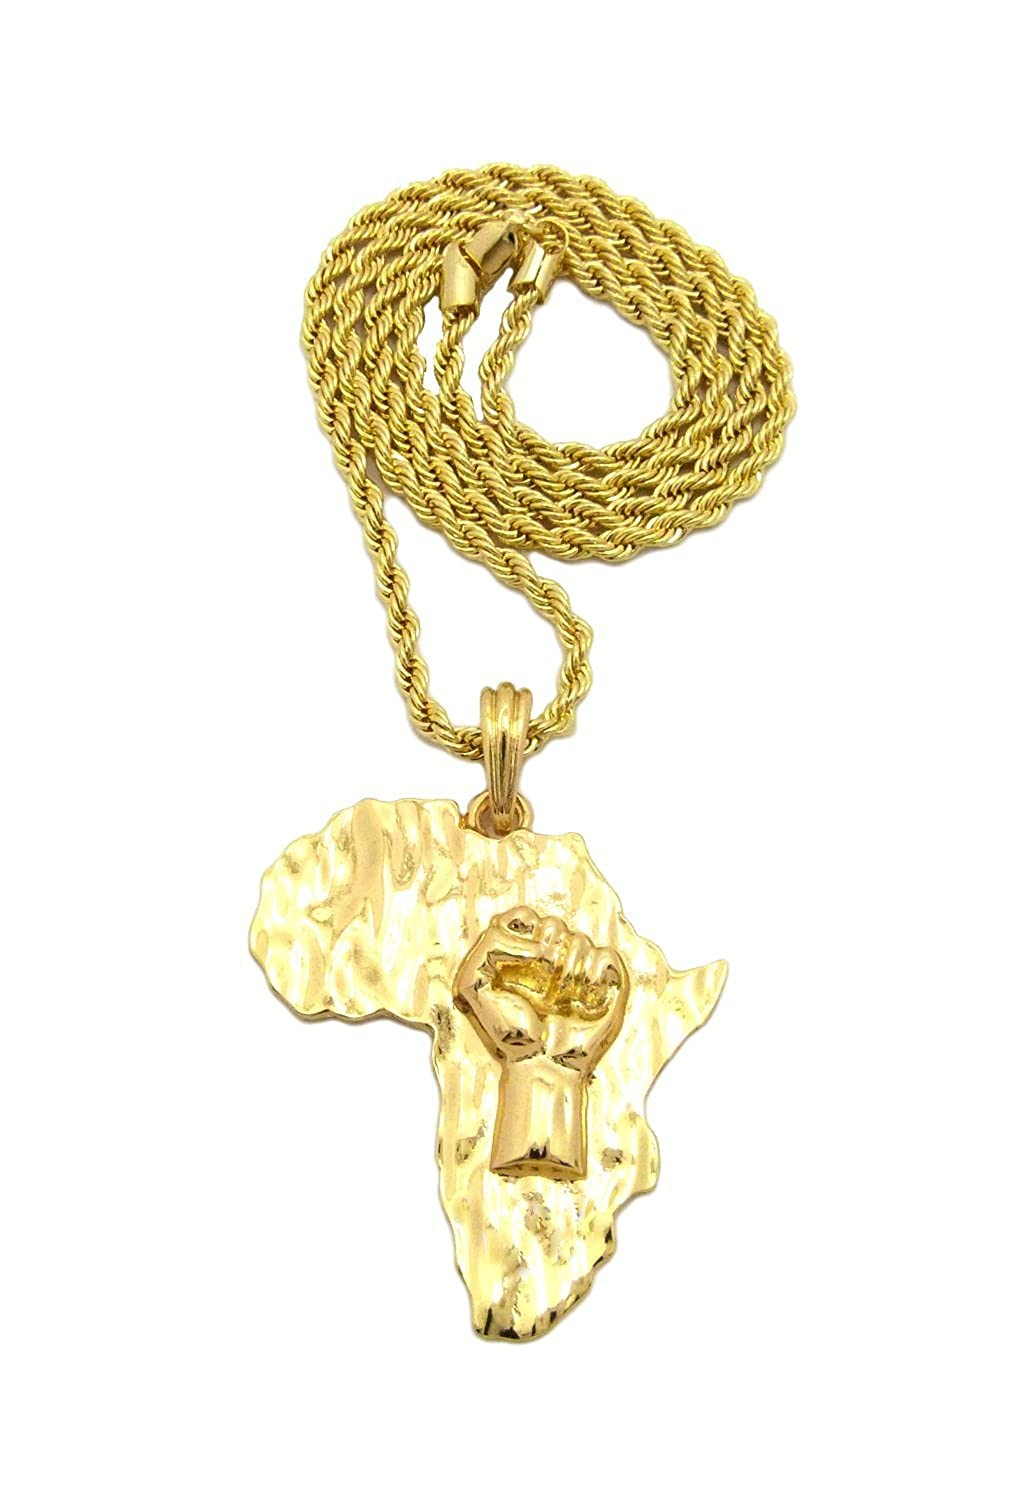 "Raising Fist Power in Africa Map Shape Pendant 24"", 30"" Various Chain Necklace Gold Tone"